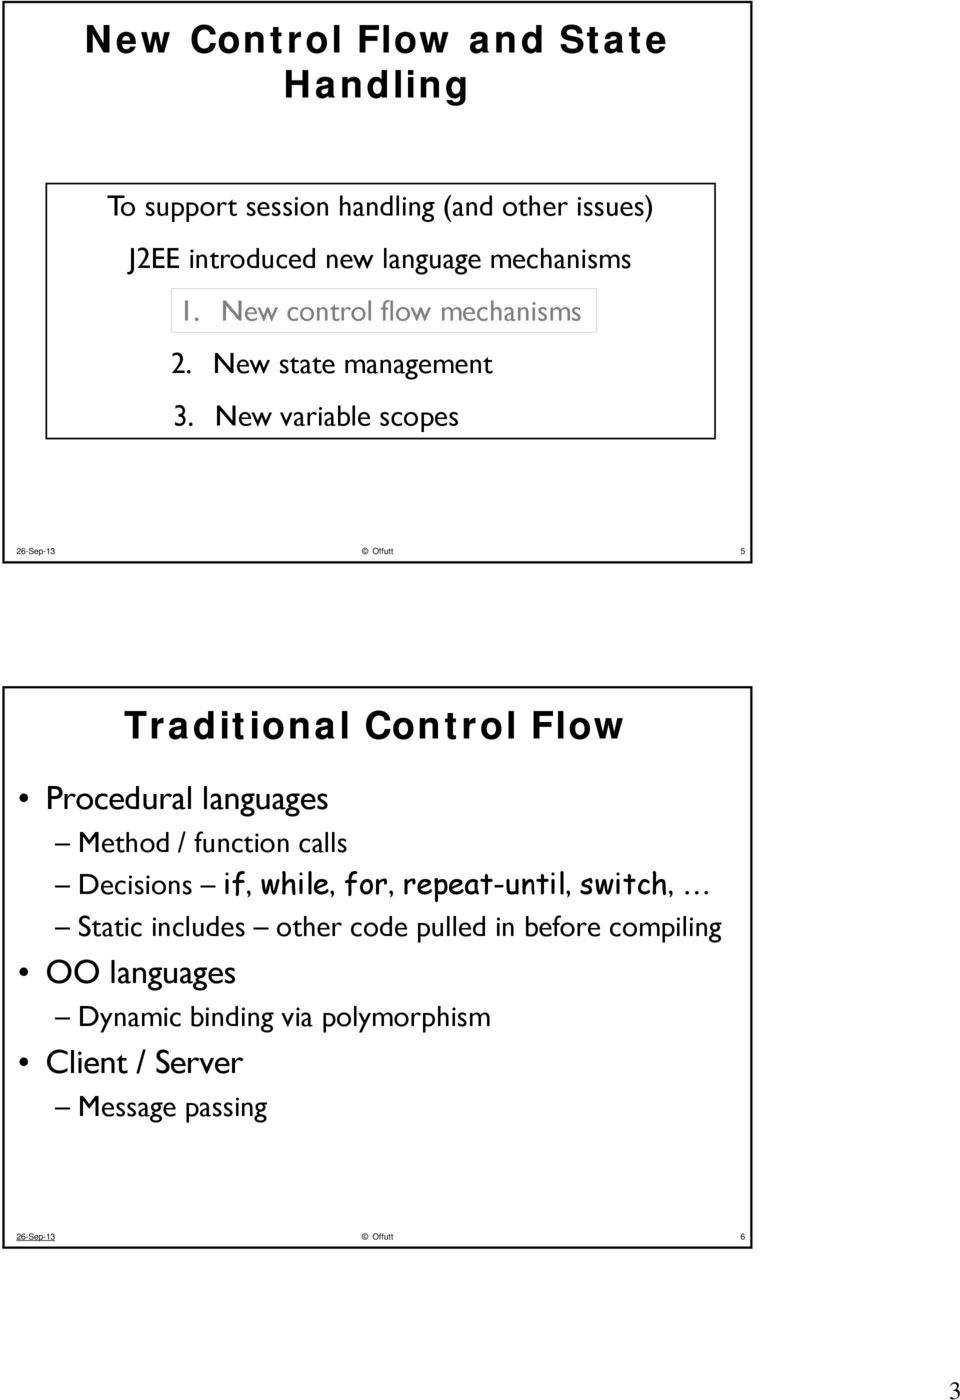 26-Sep-13 Offutt 5 Traditional Control Flow Procedural languages Method / function calls Decisions if, while, for,